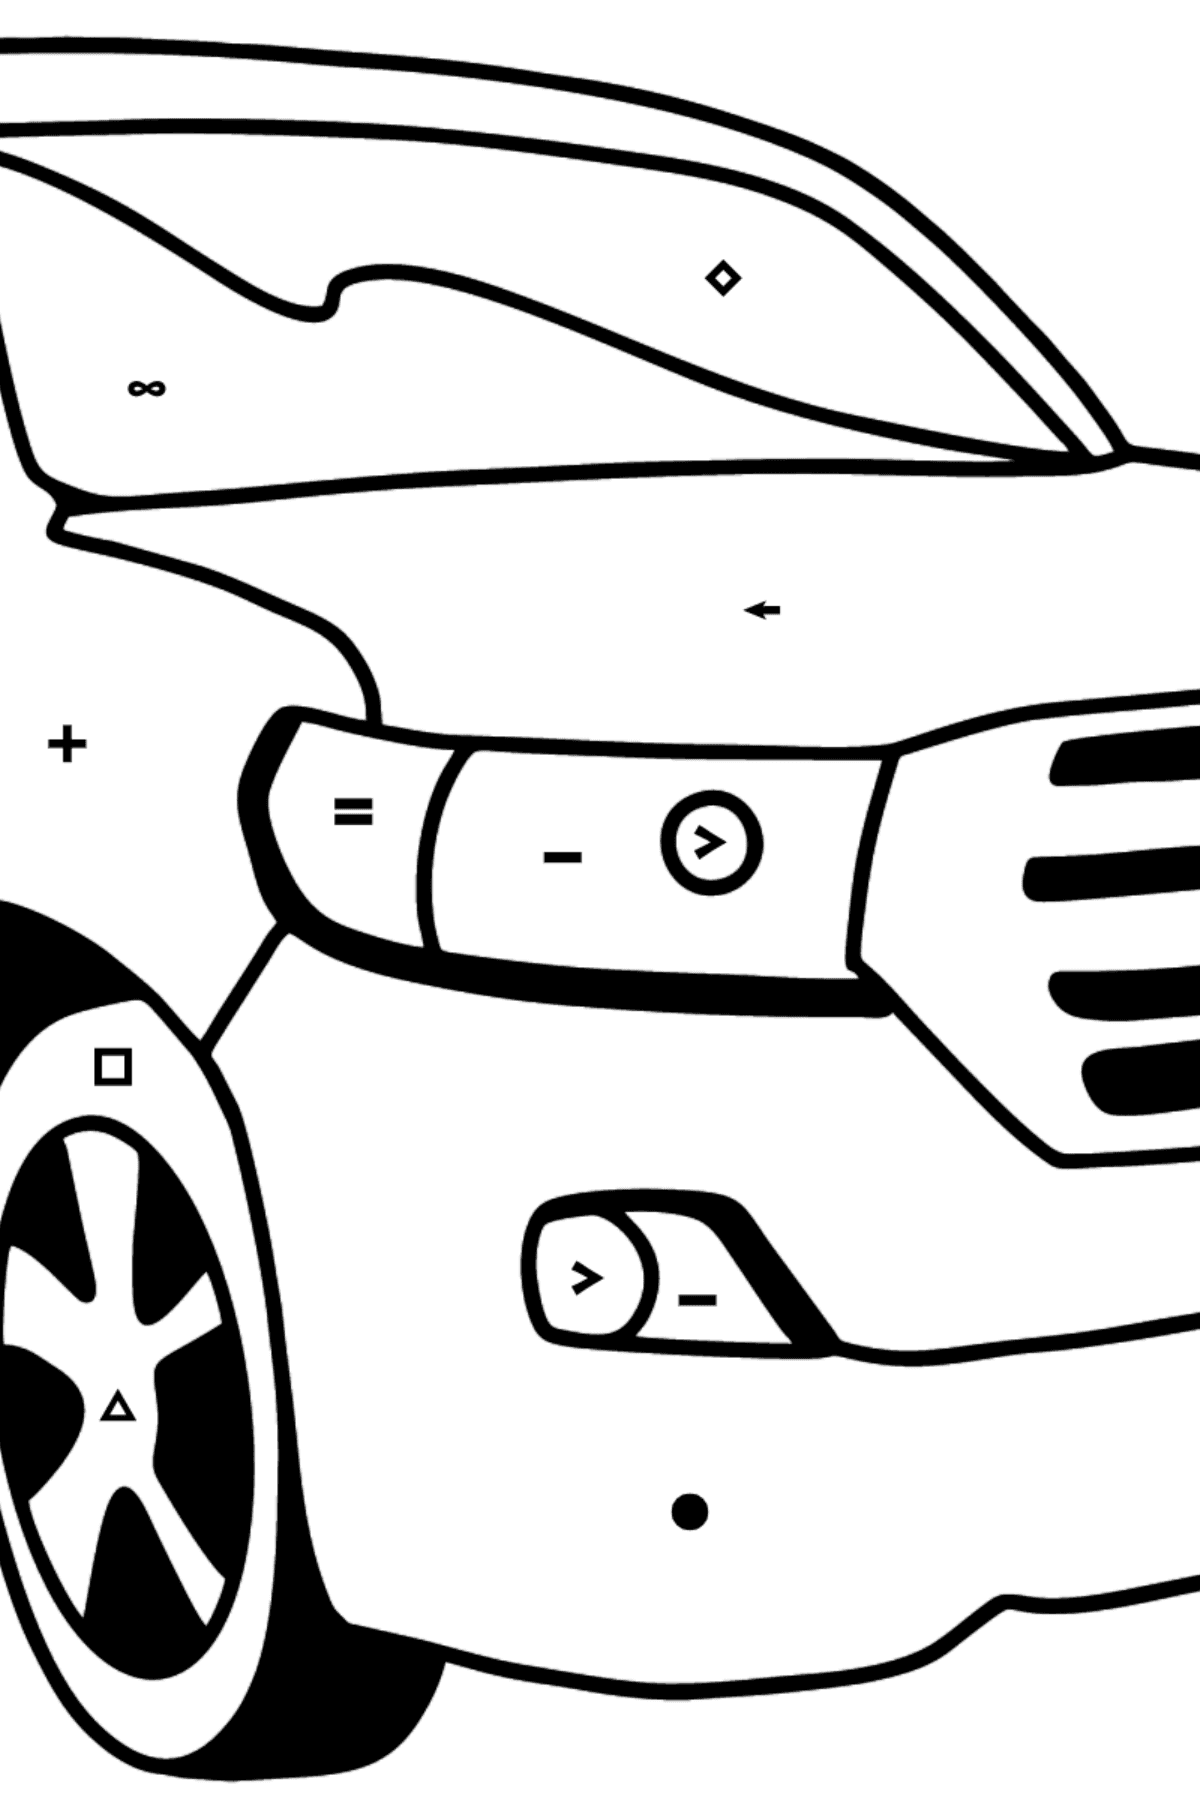 Toyota Land Cruiser Car coloring page - Coloring by Symbols for Kids